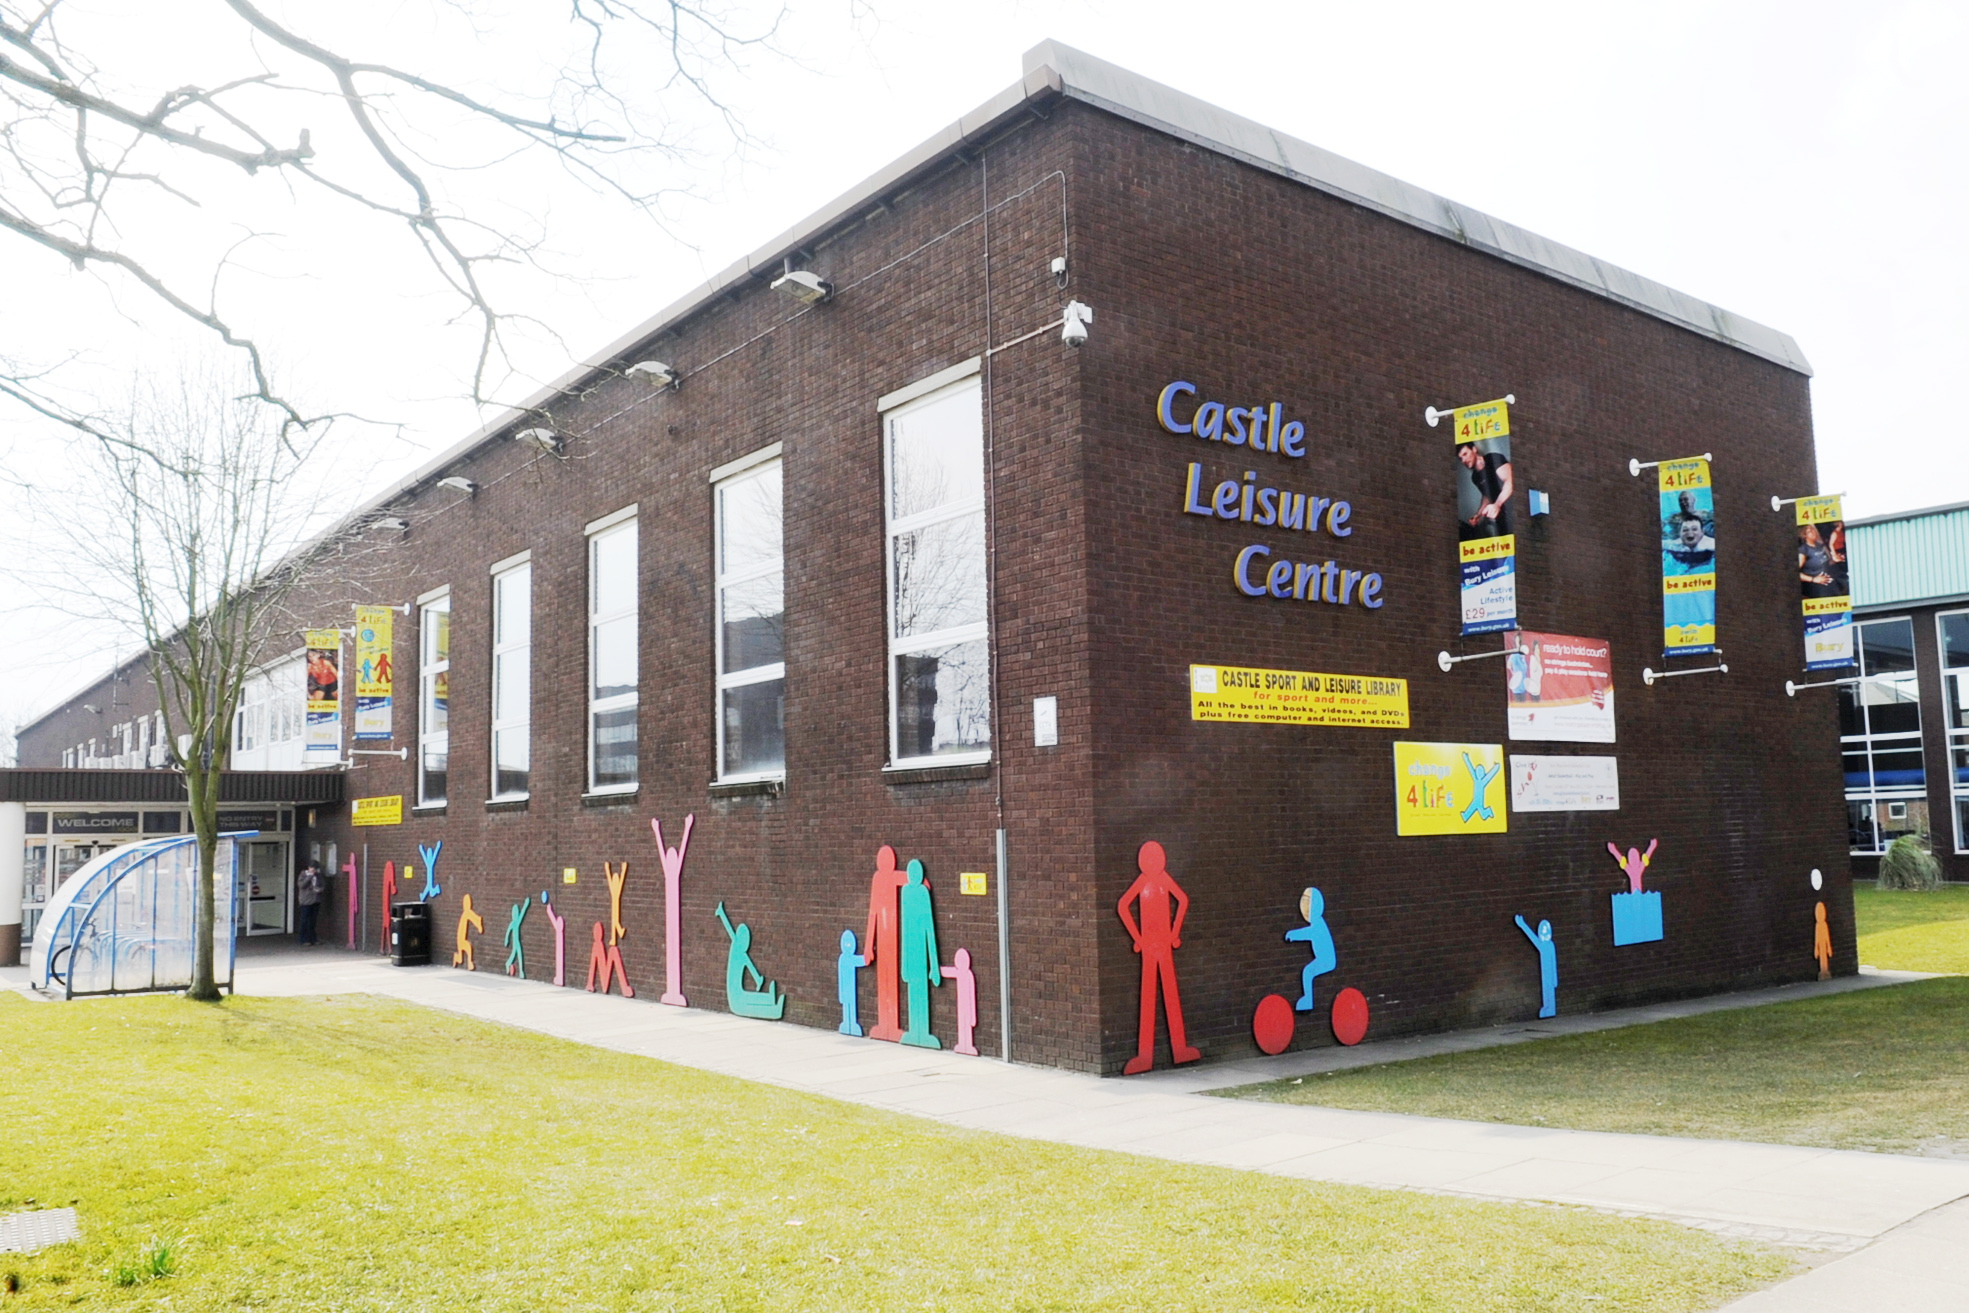 Castle Leisure Centre where Bury Sub Aqua Club is based